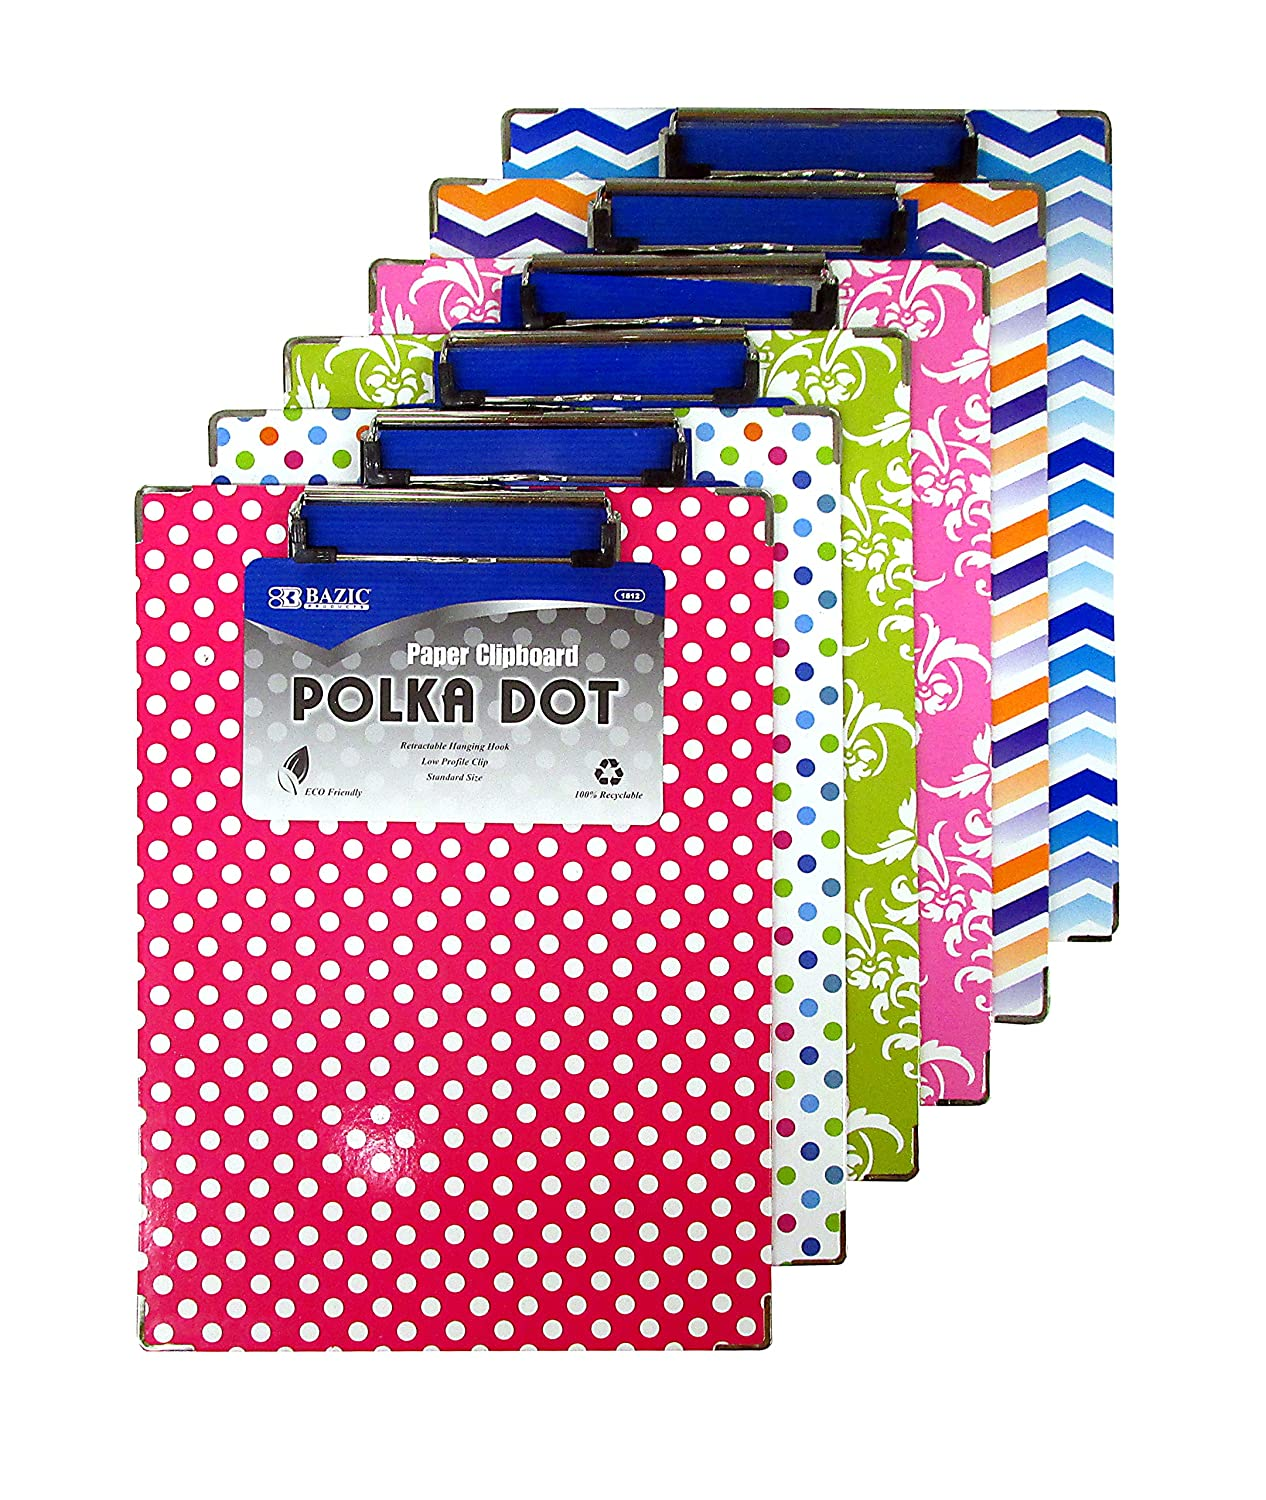 6 Pk, BAZIC Standard Size Polka Dot Paperboard Clipboard w/Low Profile Clip (Colors May Vary) 1812